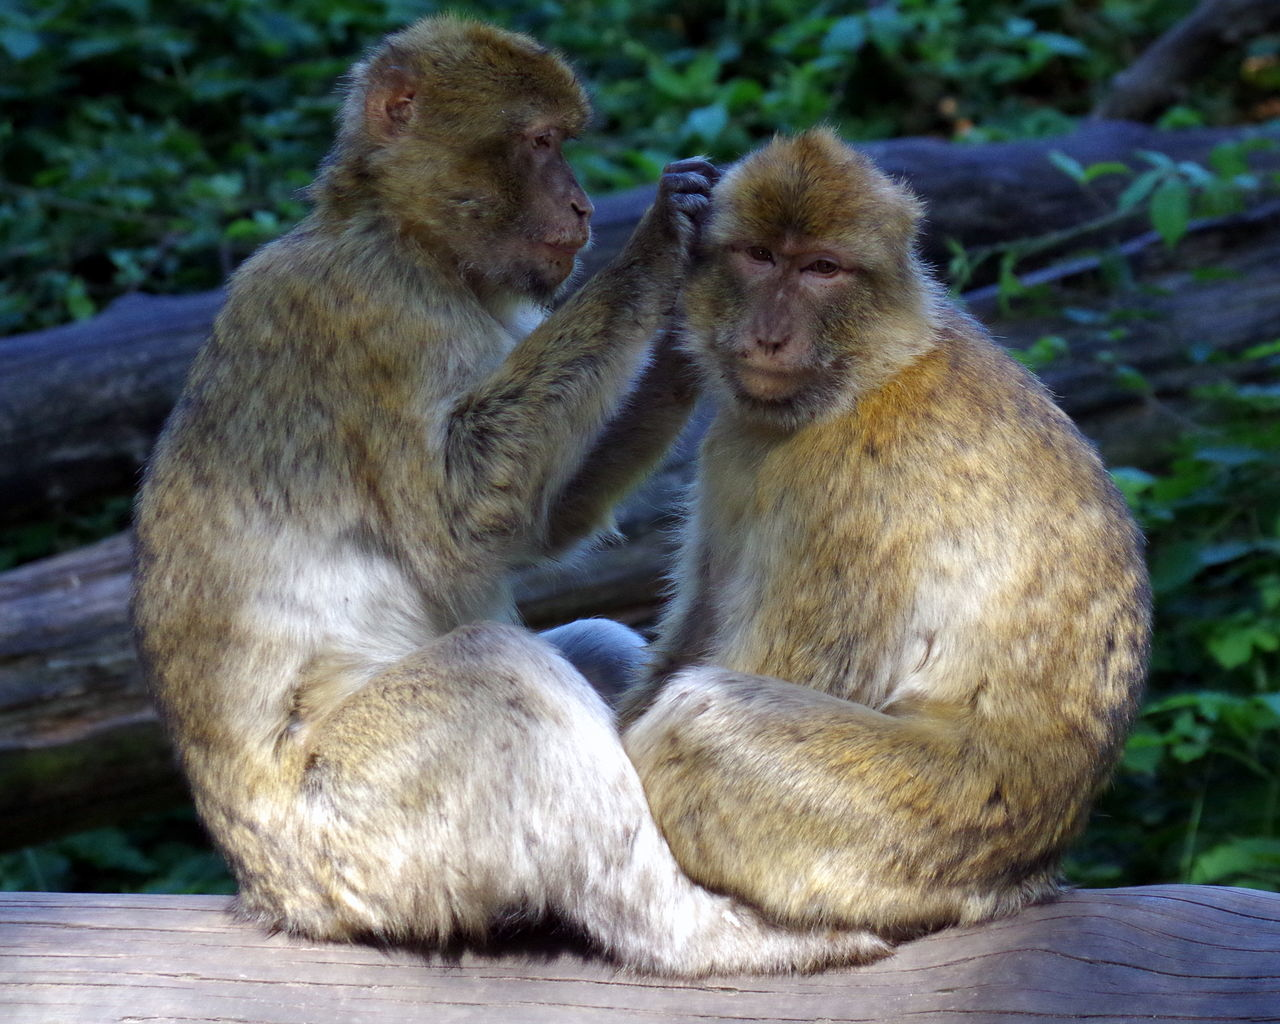 Affe Animal Fellpflege Grooming Monkey Primat Primate Sitting Sitzen Tier Two Animals Zoologie Zoology